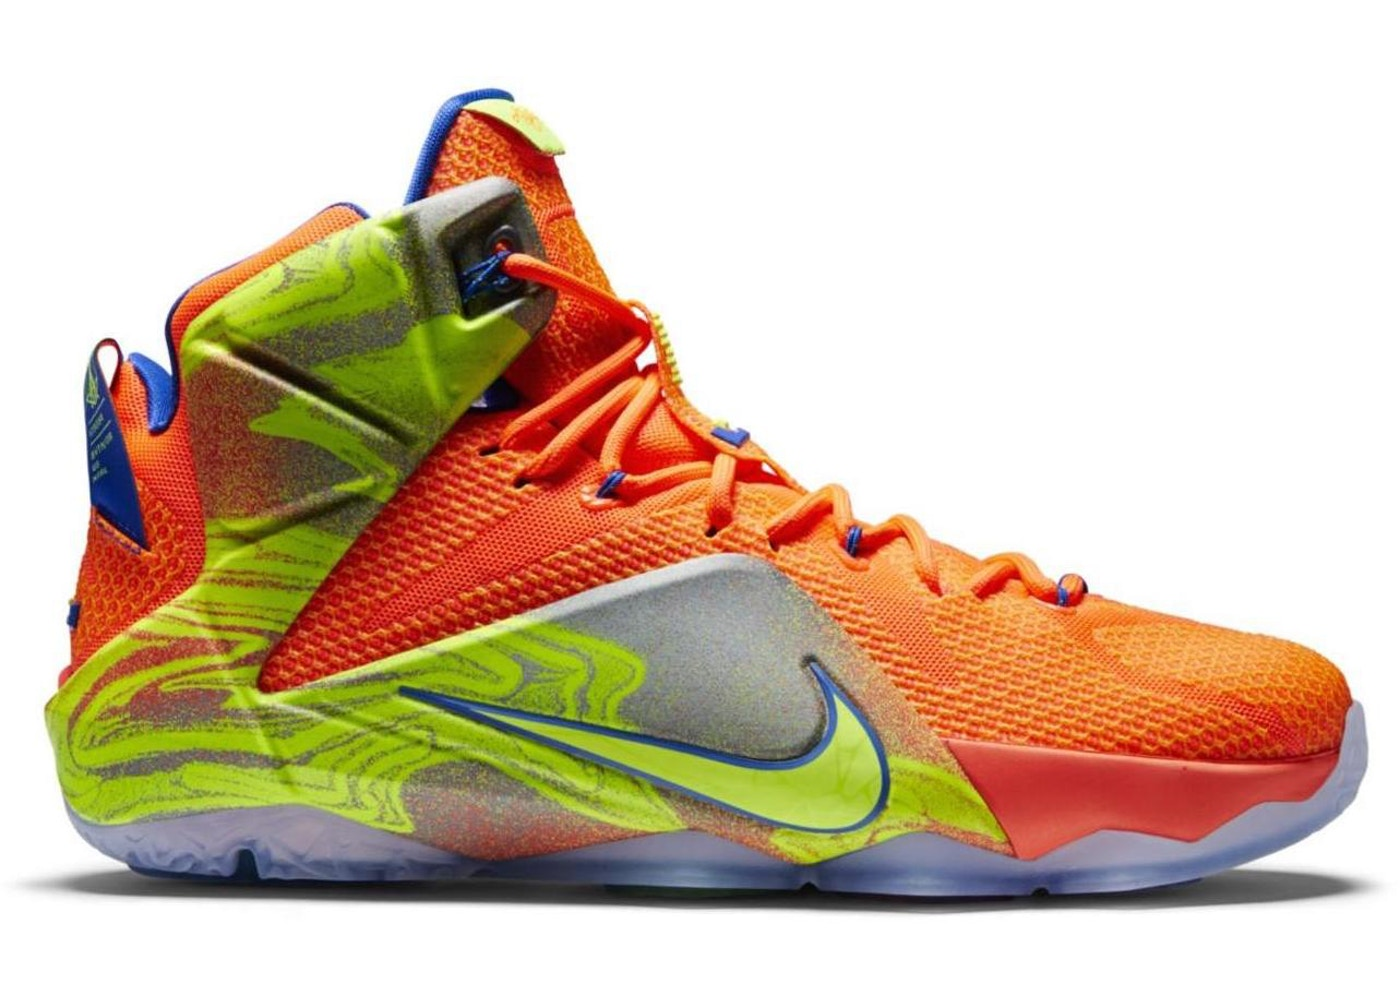 quality design f3518 1bf9e Buy Nike LeBron 12 Shoes  Deadstock Sneakers